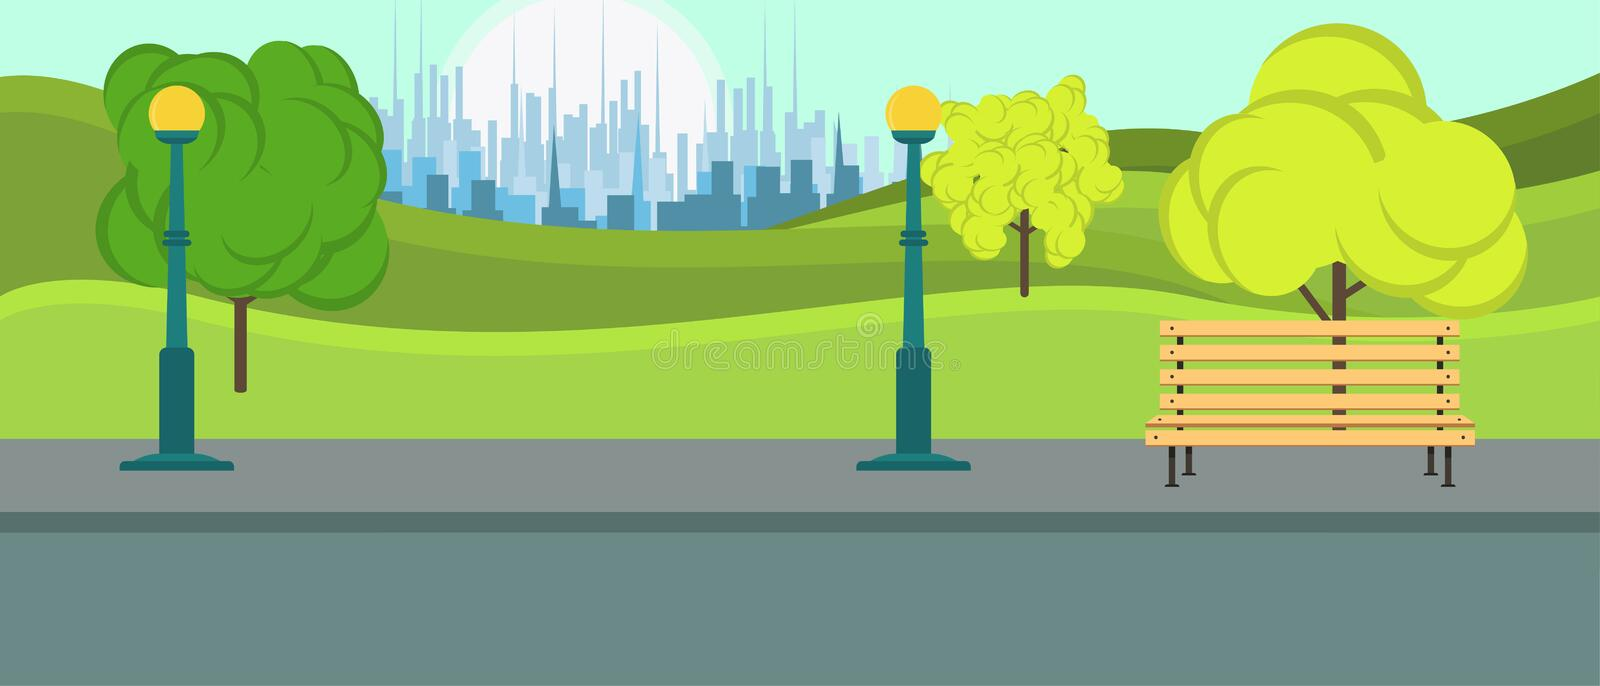 Public park city vector. Leisure season environment landscape natural with bench background. Playground summer flat relax activity vector illustration